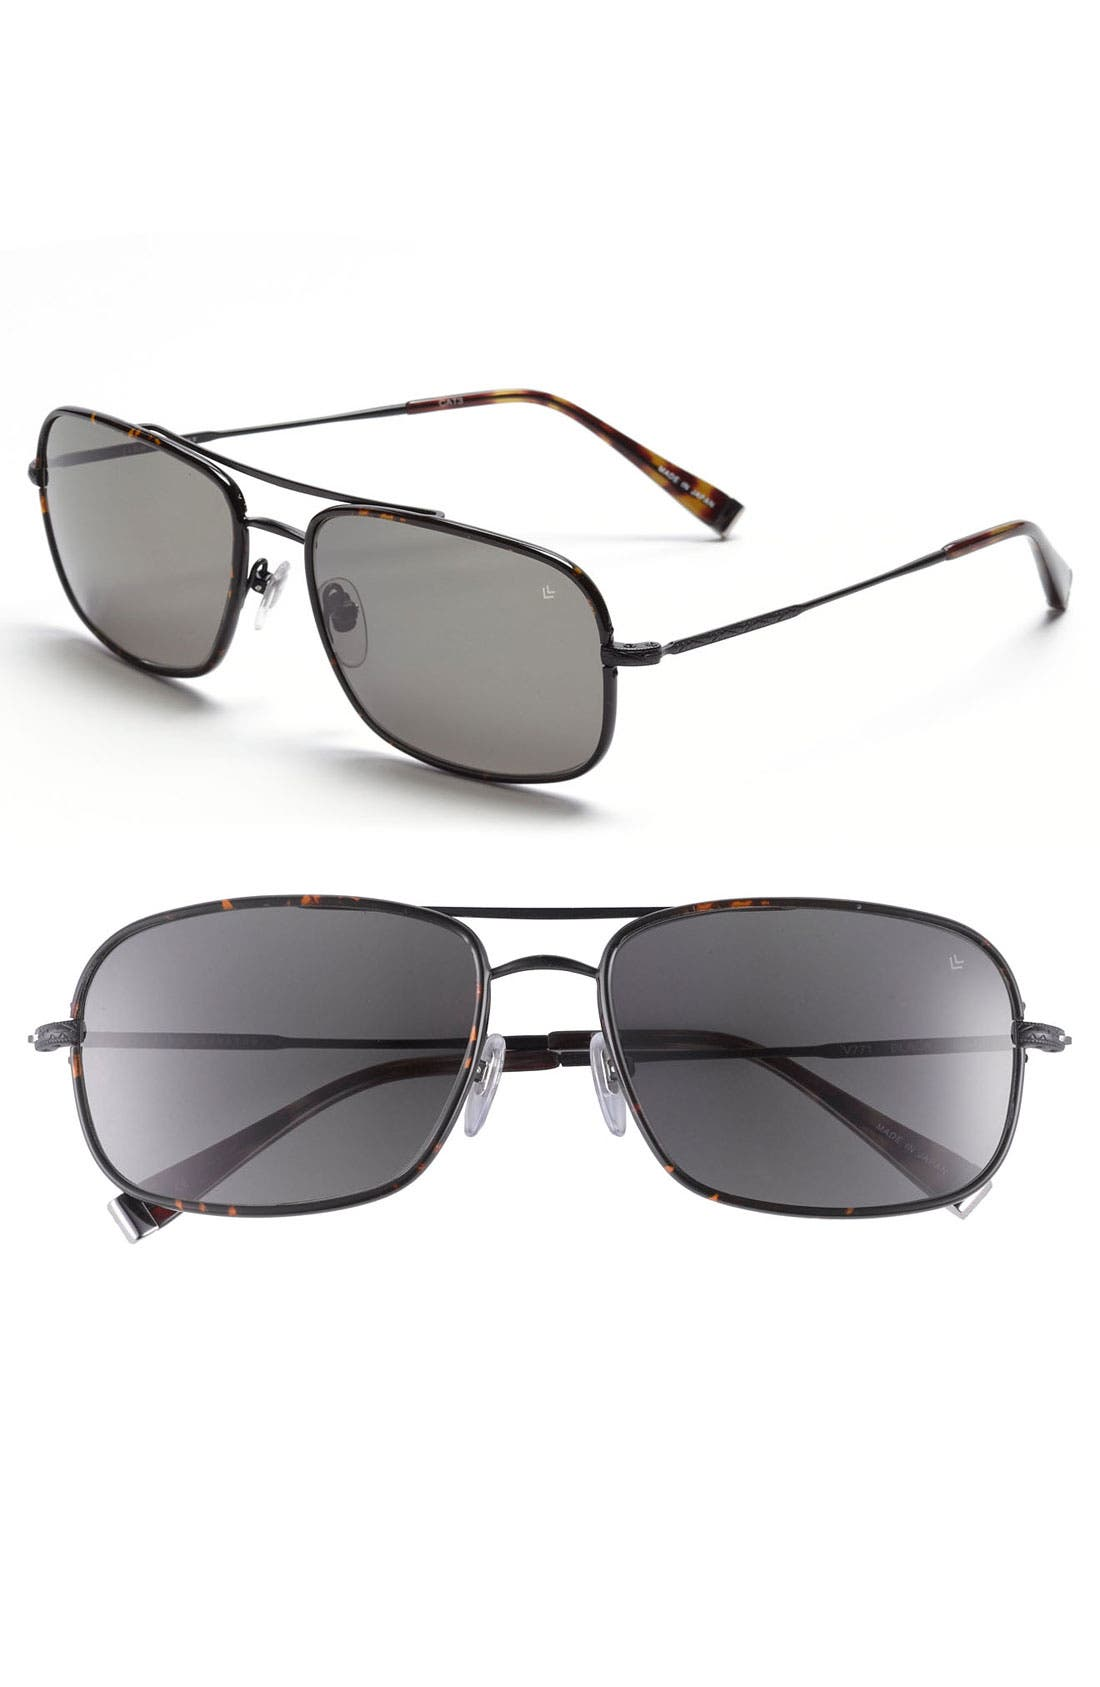 Main Image - John Varvatos Collection 58mm Rectangular Aviator Sunglasses